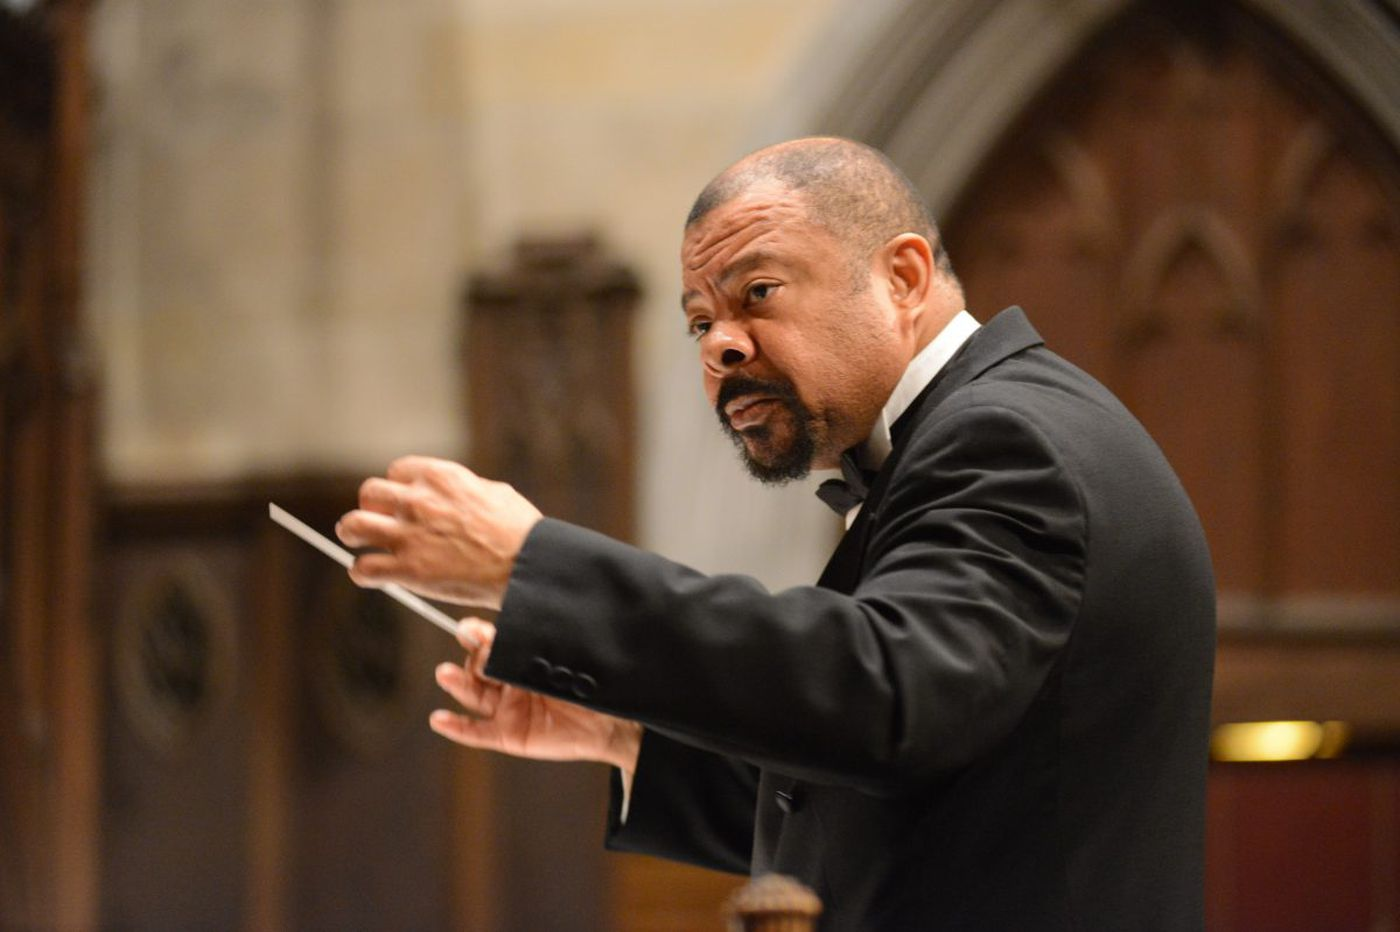 At Tindley Temple on South Broad, a pipe organ and Messiah equally historic